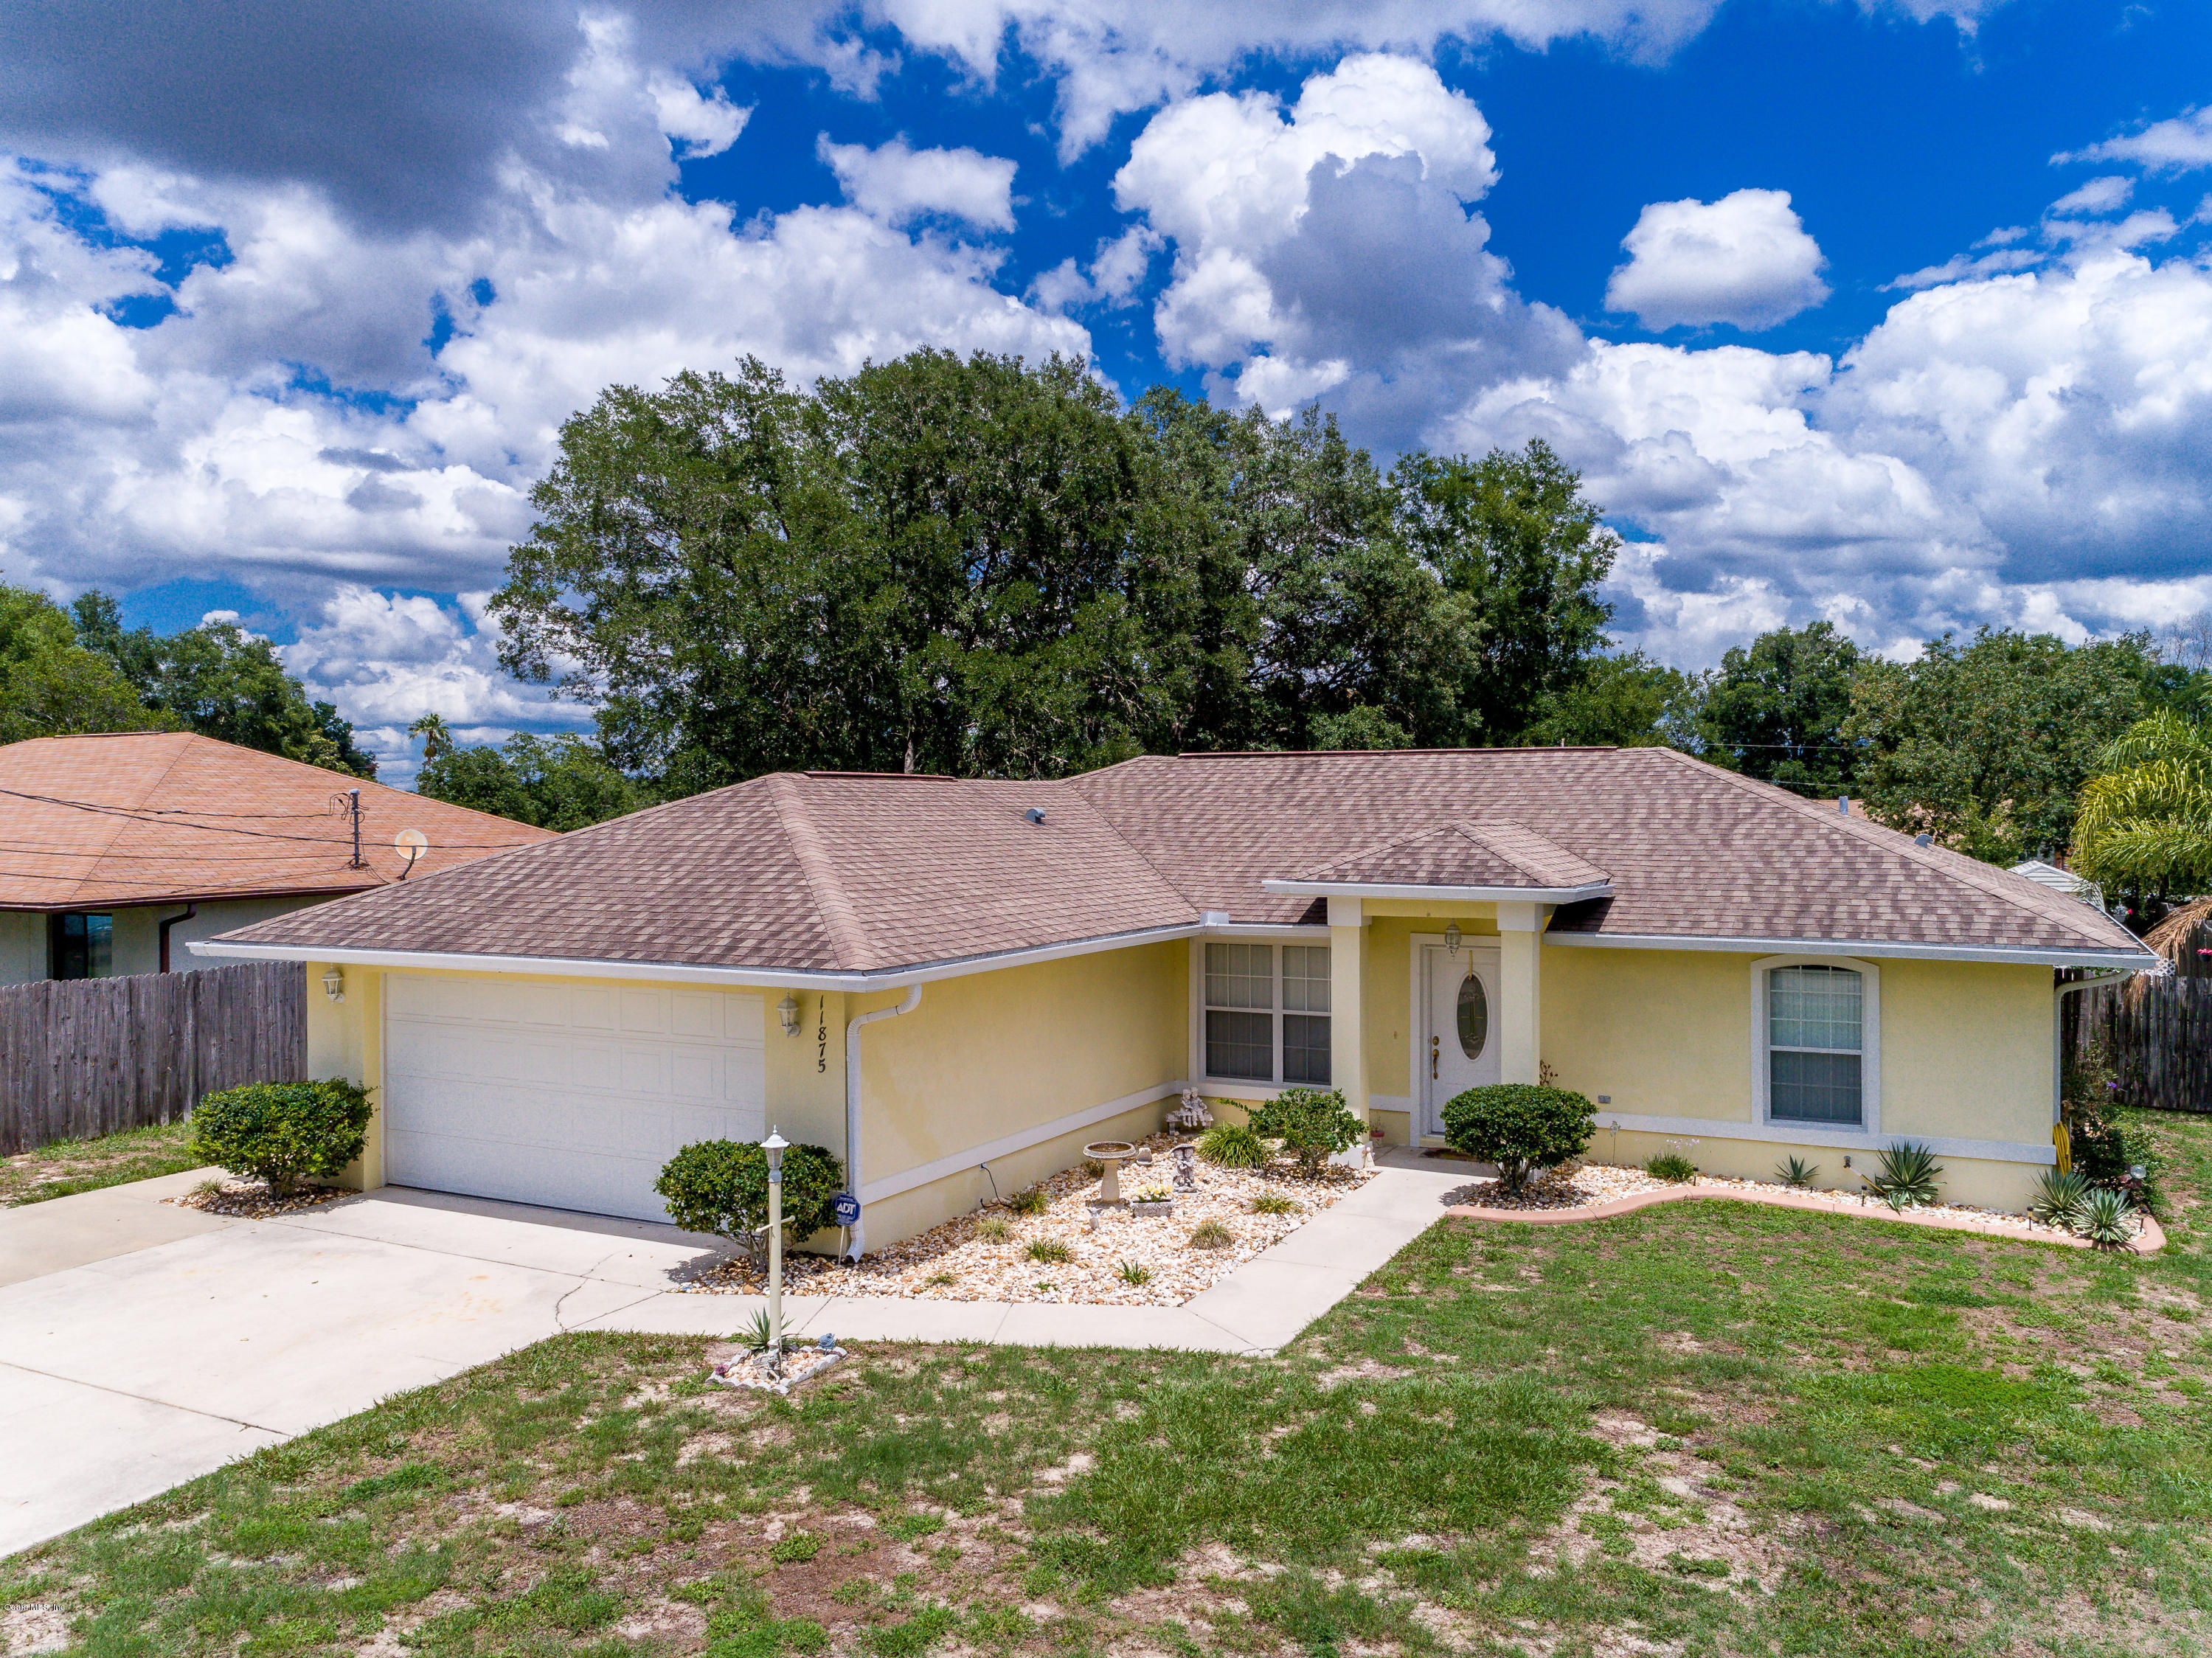 11875 SE 72ND TERRACE ROAD, BELLEVIEW, FL 34420